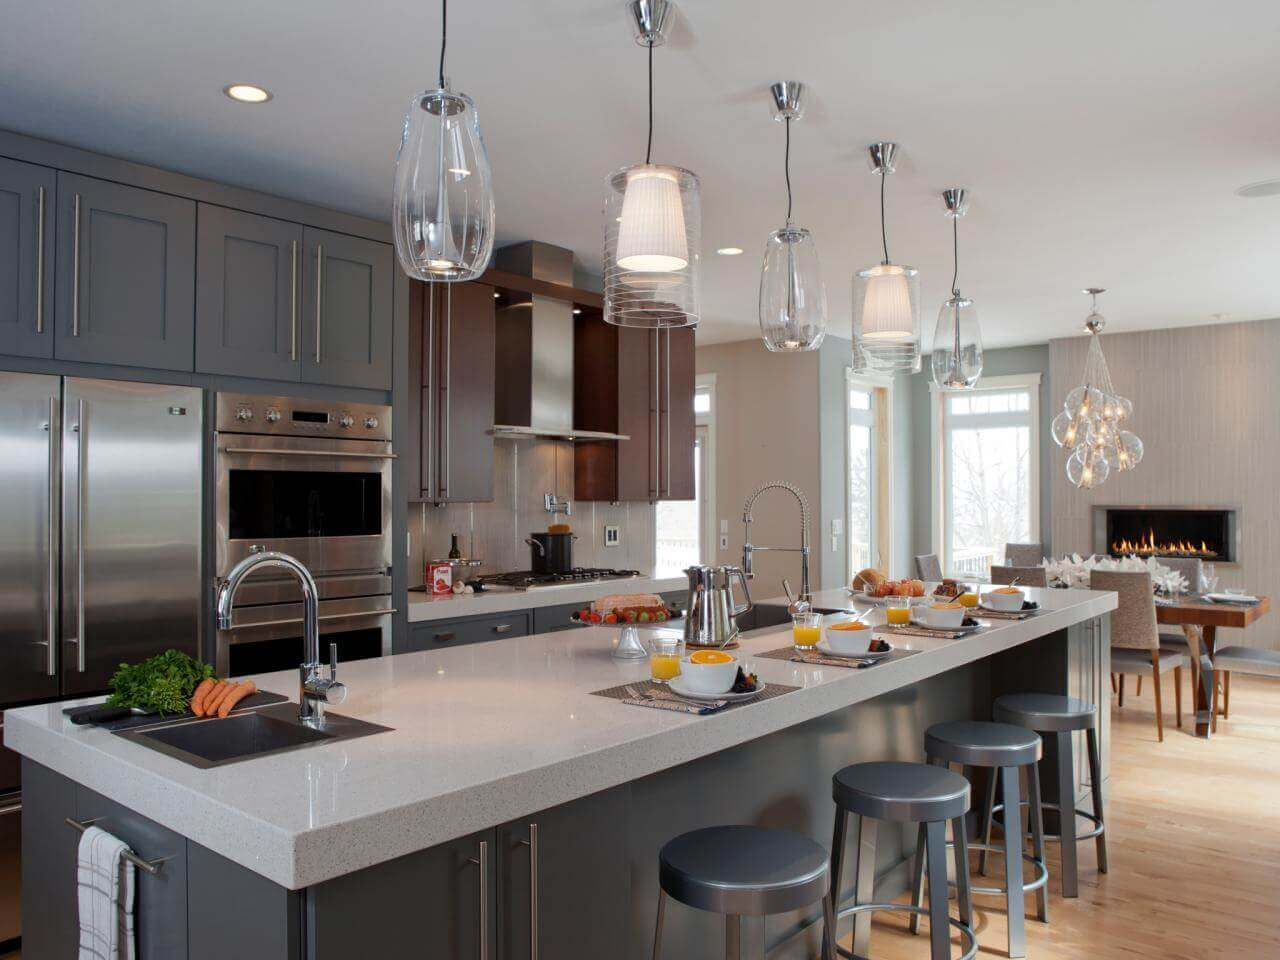 89 contemporary kitchen design ideas gallery contemporary pendant lights for kitchen island